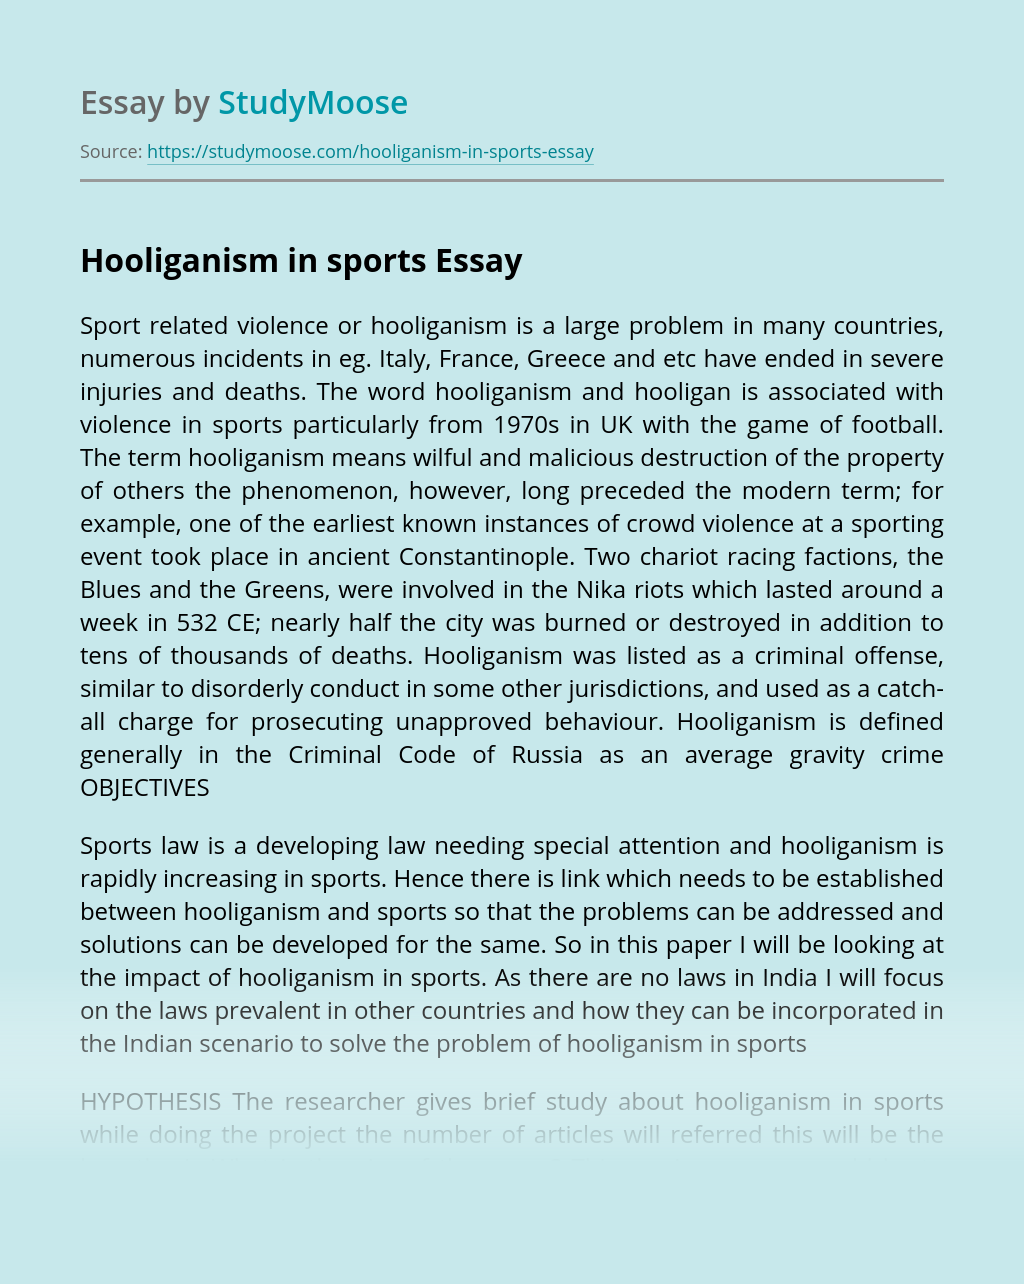 Hooliganism in sports